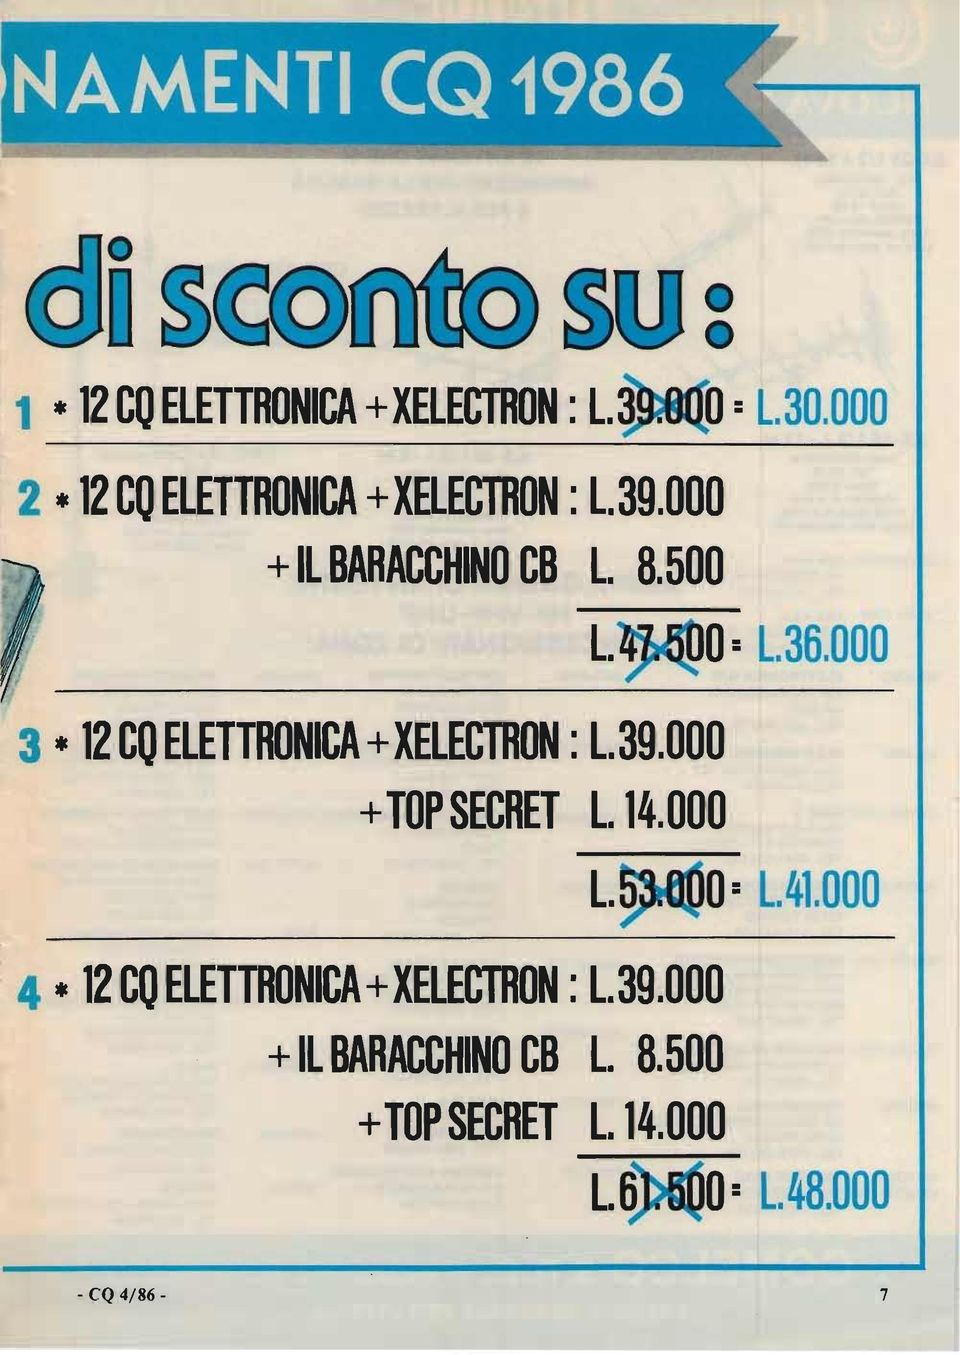 500 3 * 12 CO ELETTRONCA +XELECTRON : L.39.000 + TOP SECRET l. 14.000 L. O: L. 36.